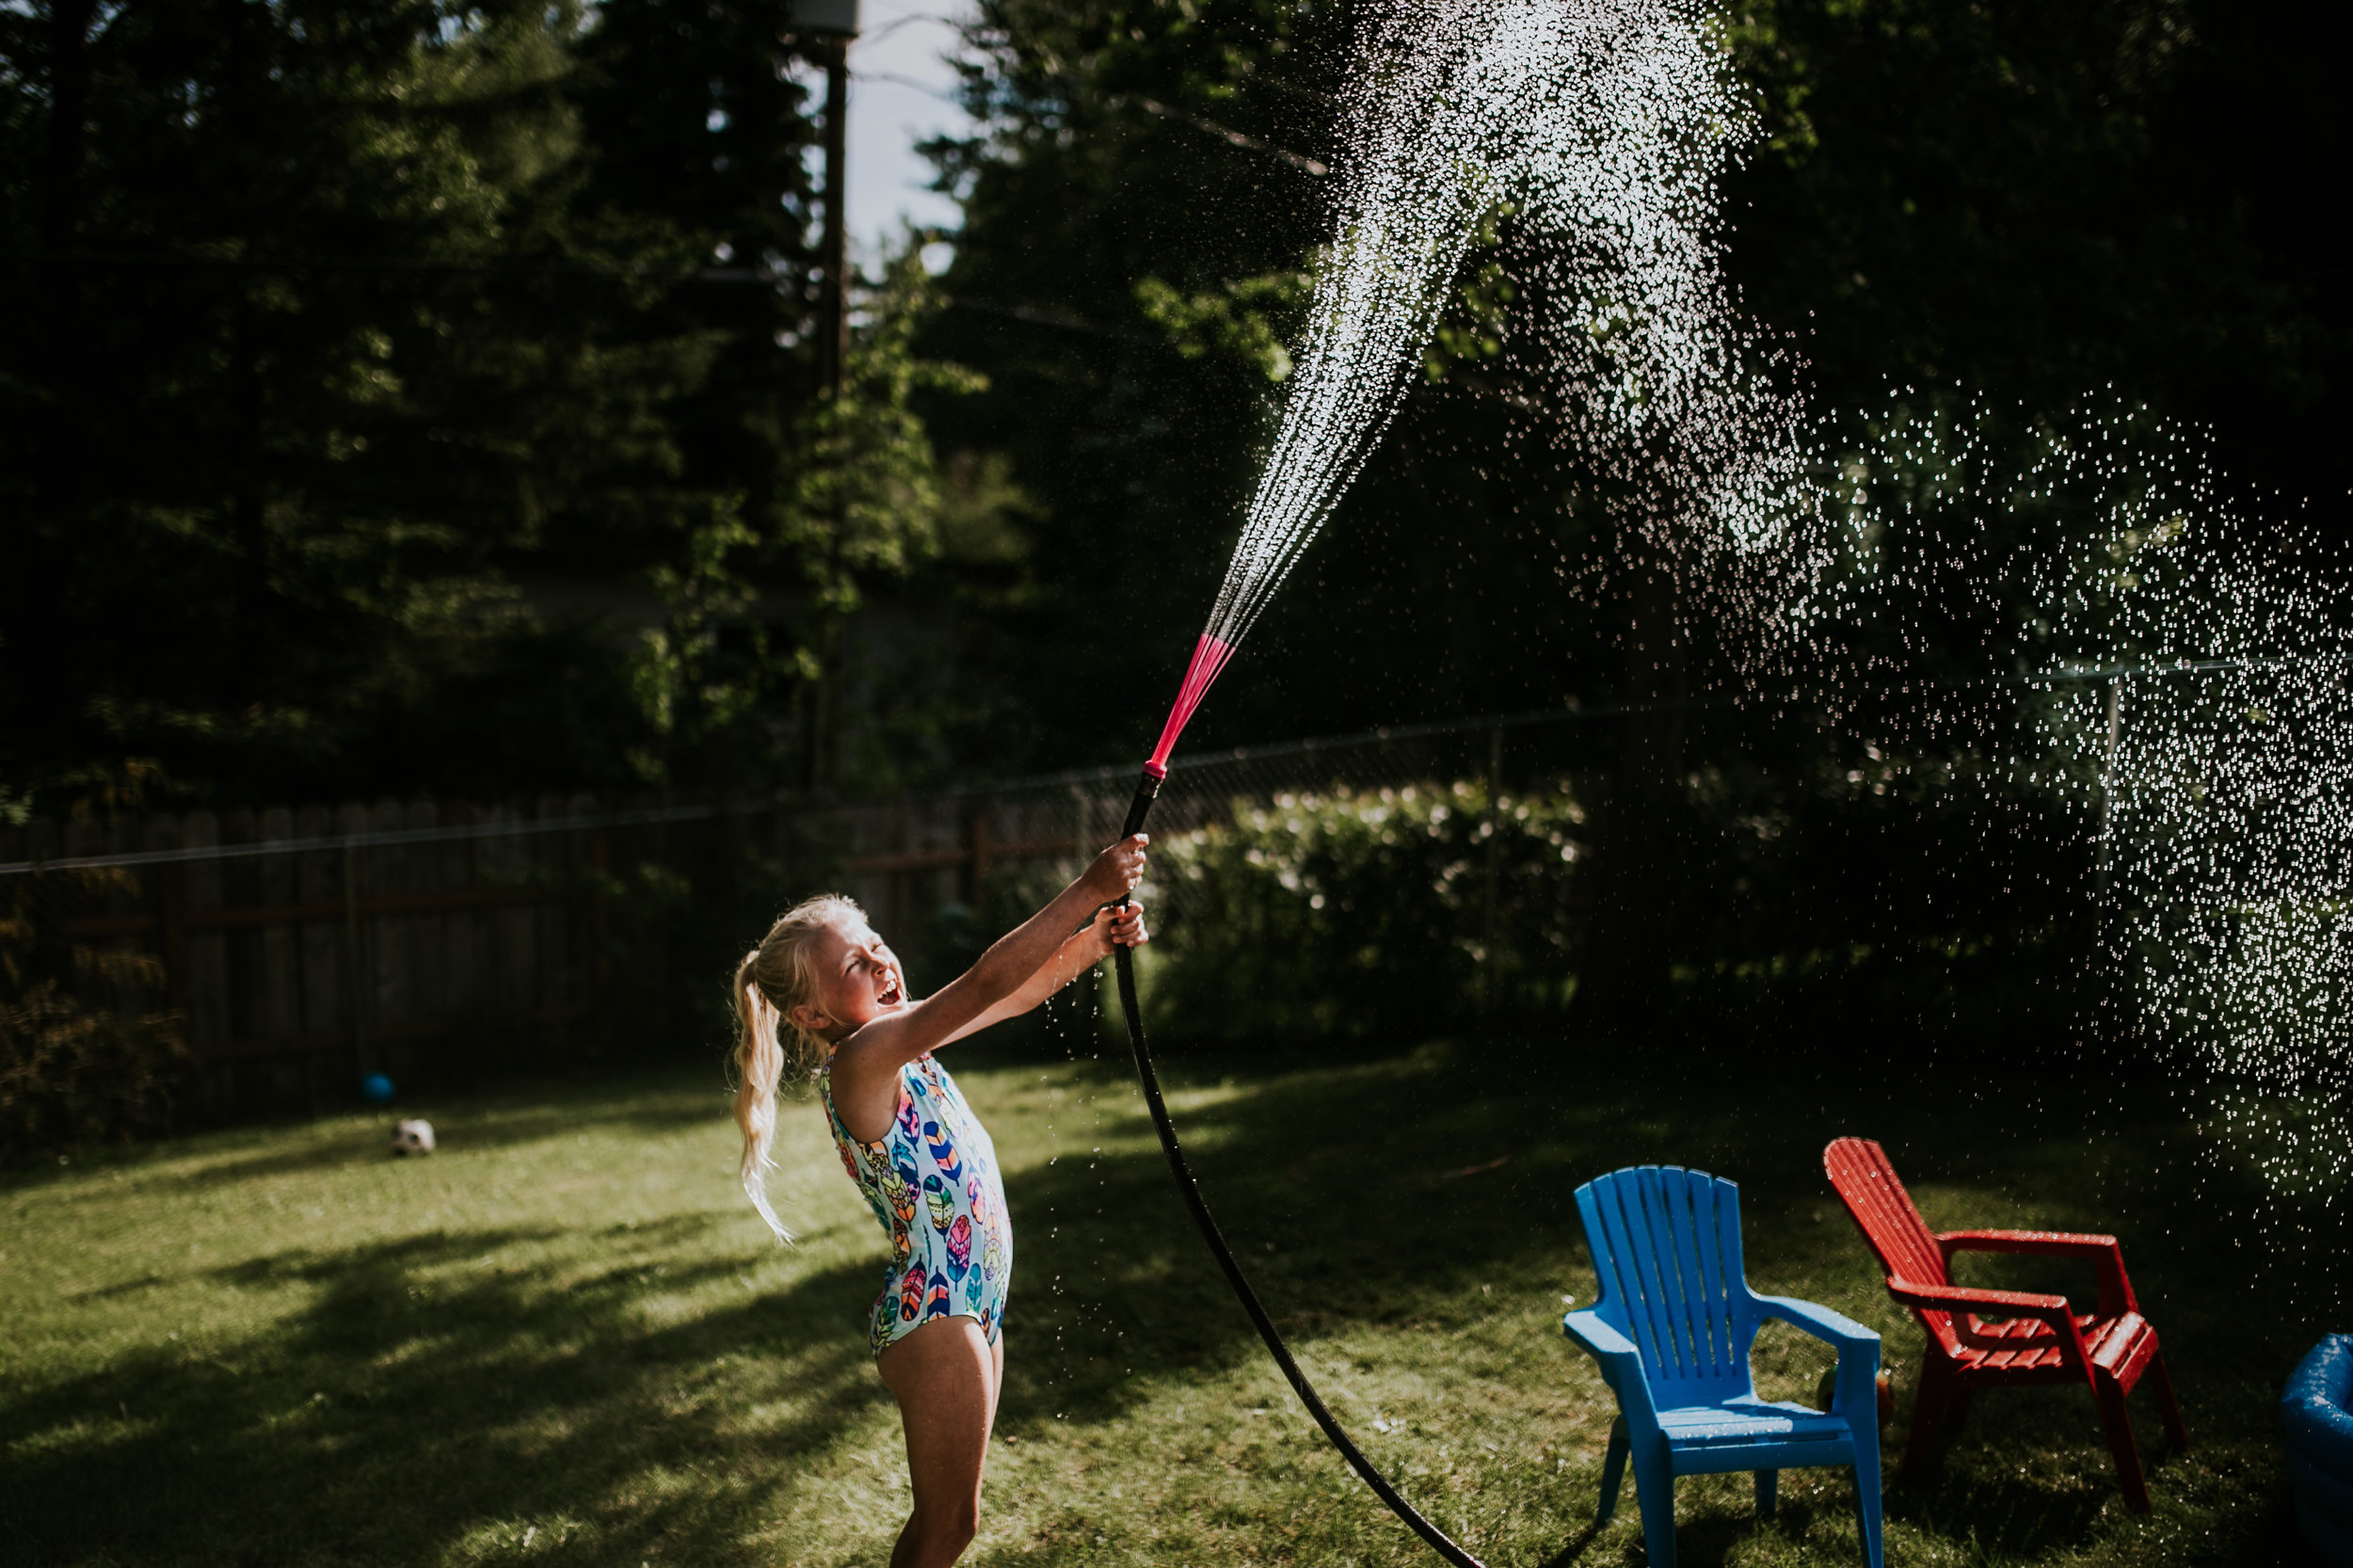 sprinkler time = fun -